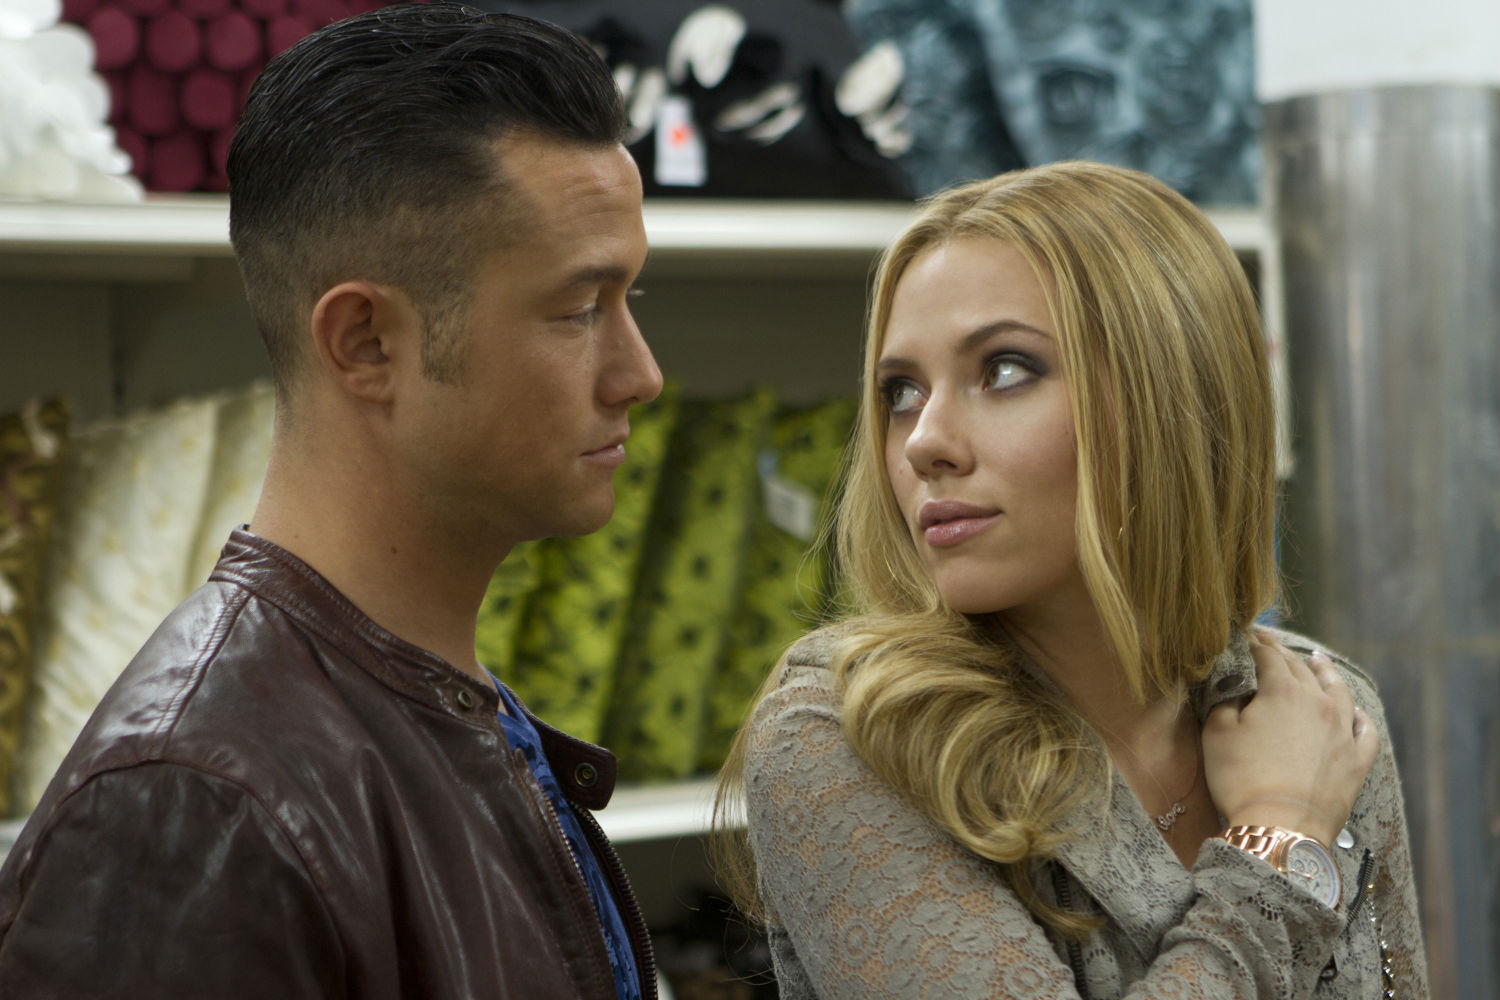 gordon levitt johansson don jon